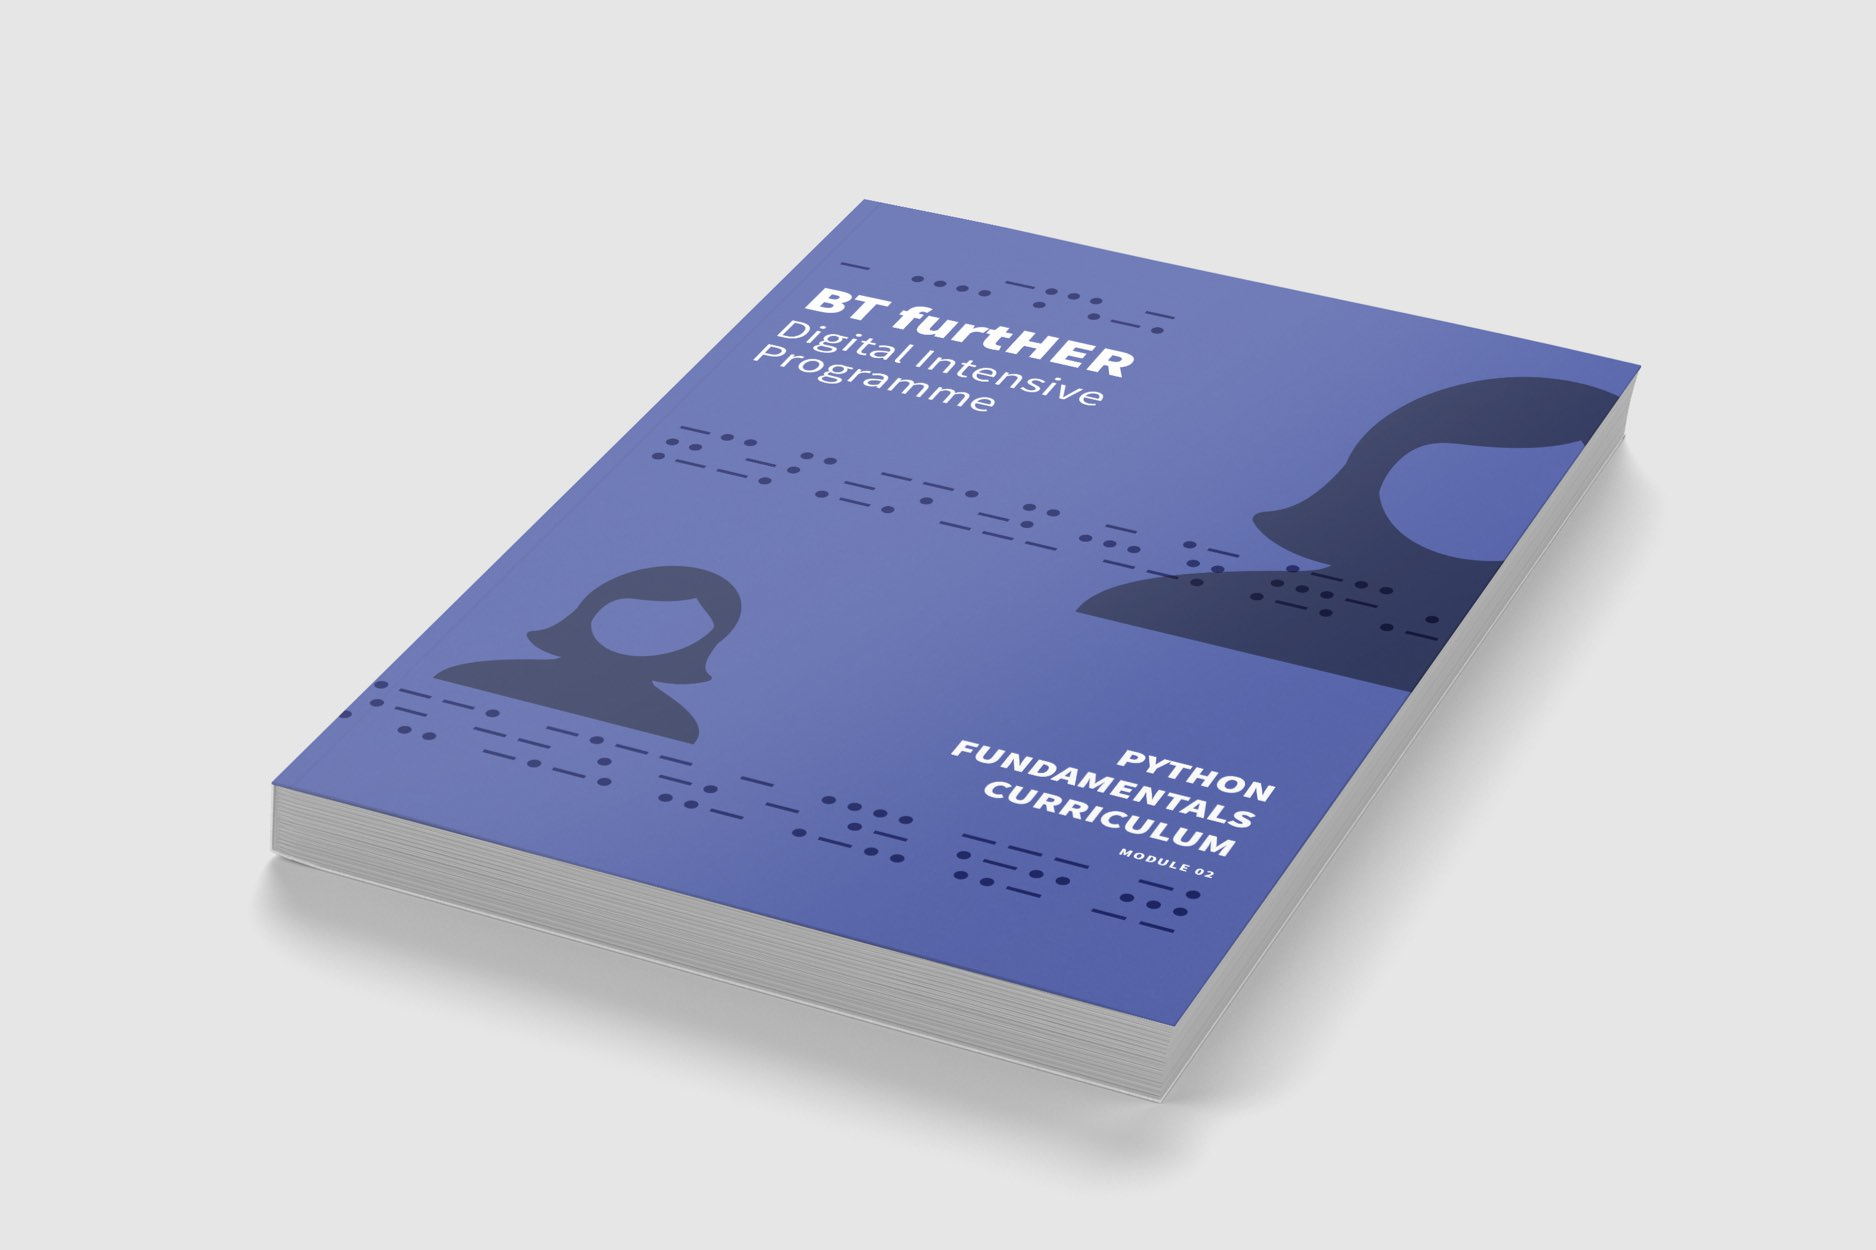 Book cover design for the Python Fundamentals Curriculum book from the BT furtHER Digital Intensive Programme.